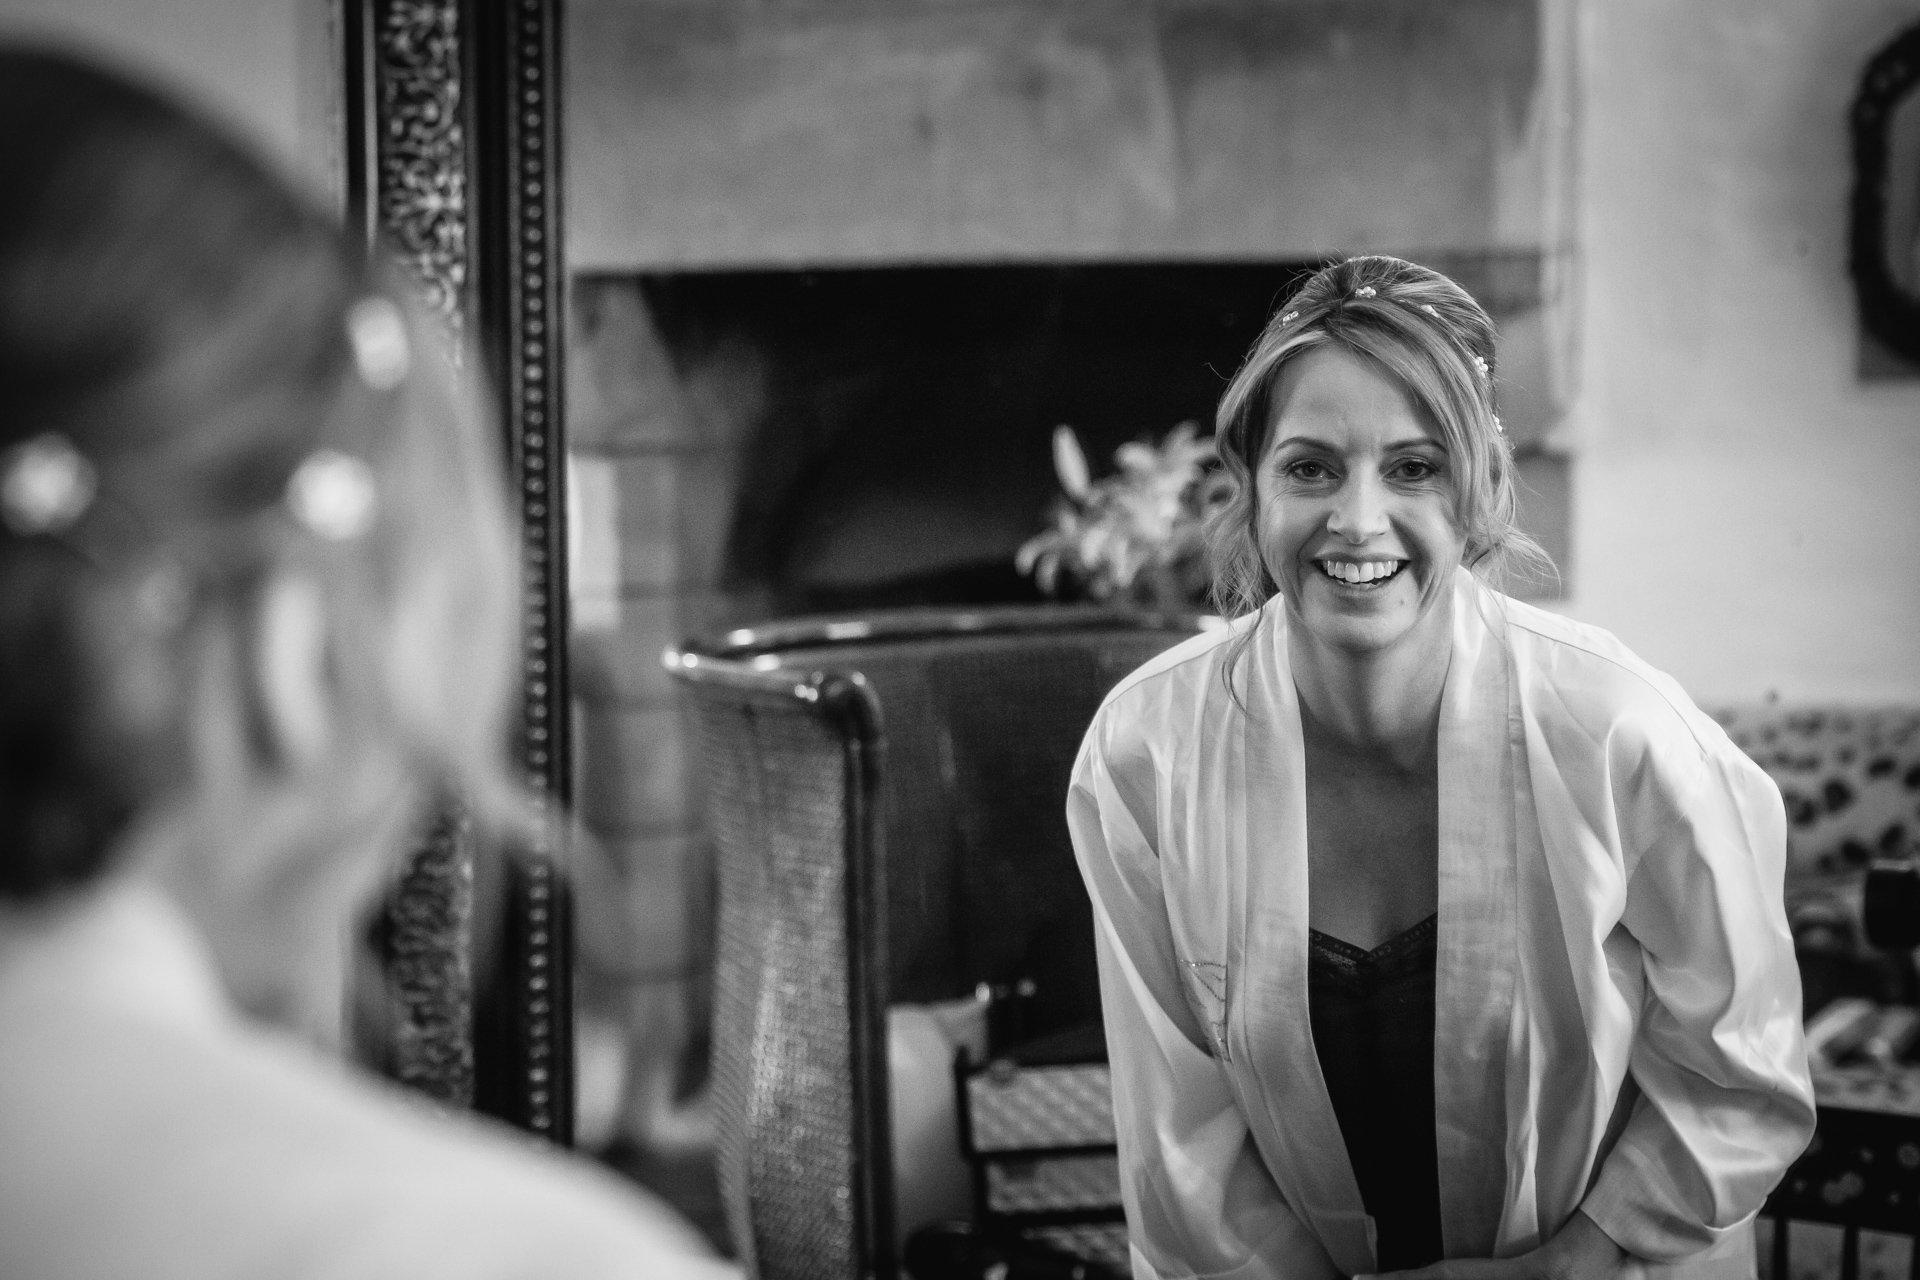 Smiling Bride as she looks at her reflection on a mirror getting ready for her Wedding at Allington Castle, Kent